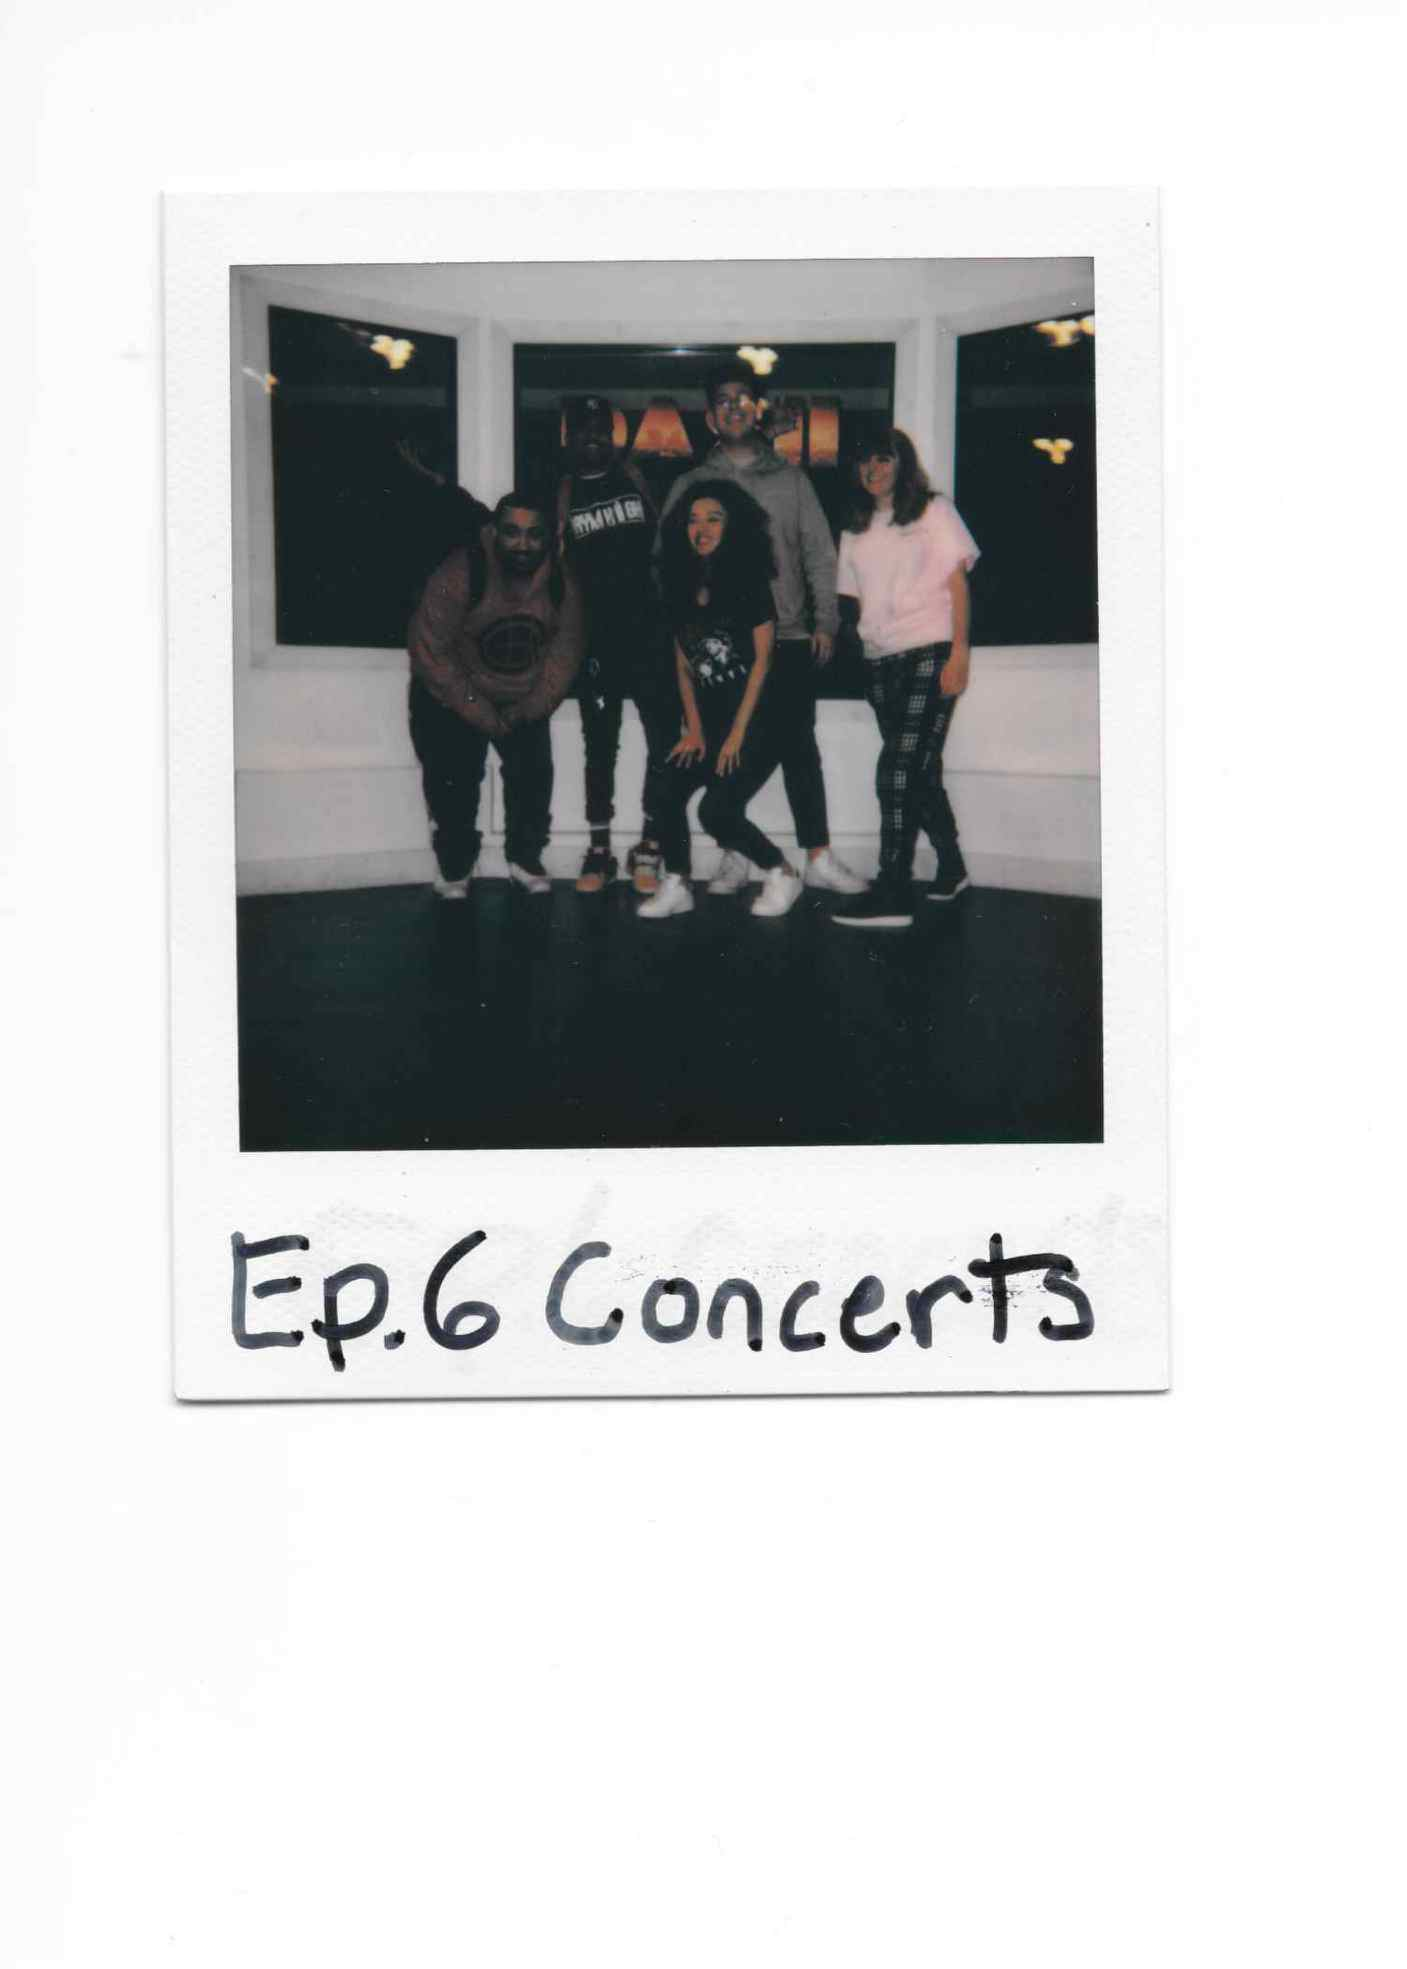 Episode 6 - Concerts - We share memories from our favorite concerts and also give some dos and don'ts on how to have a successful show. Rage wisely.